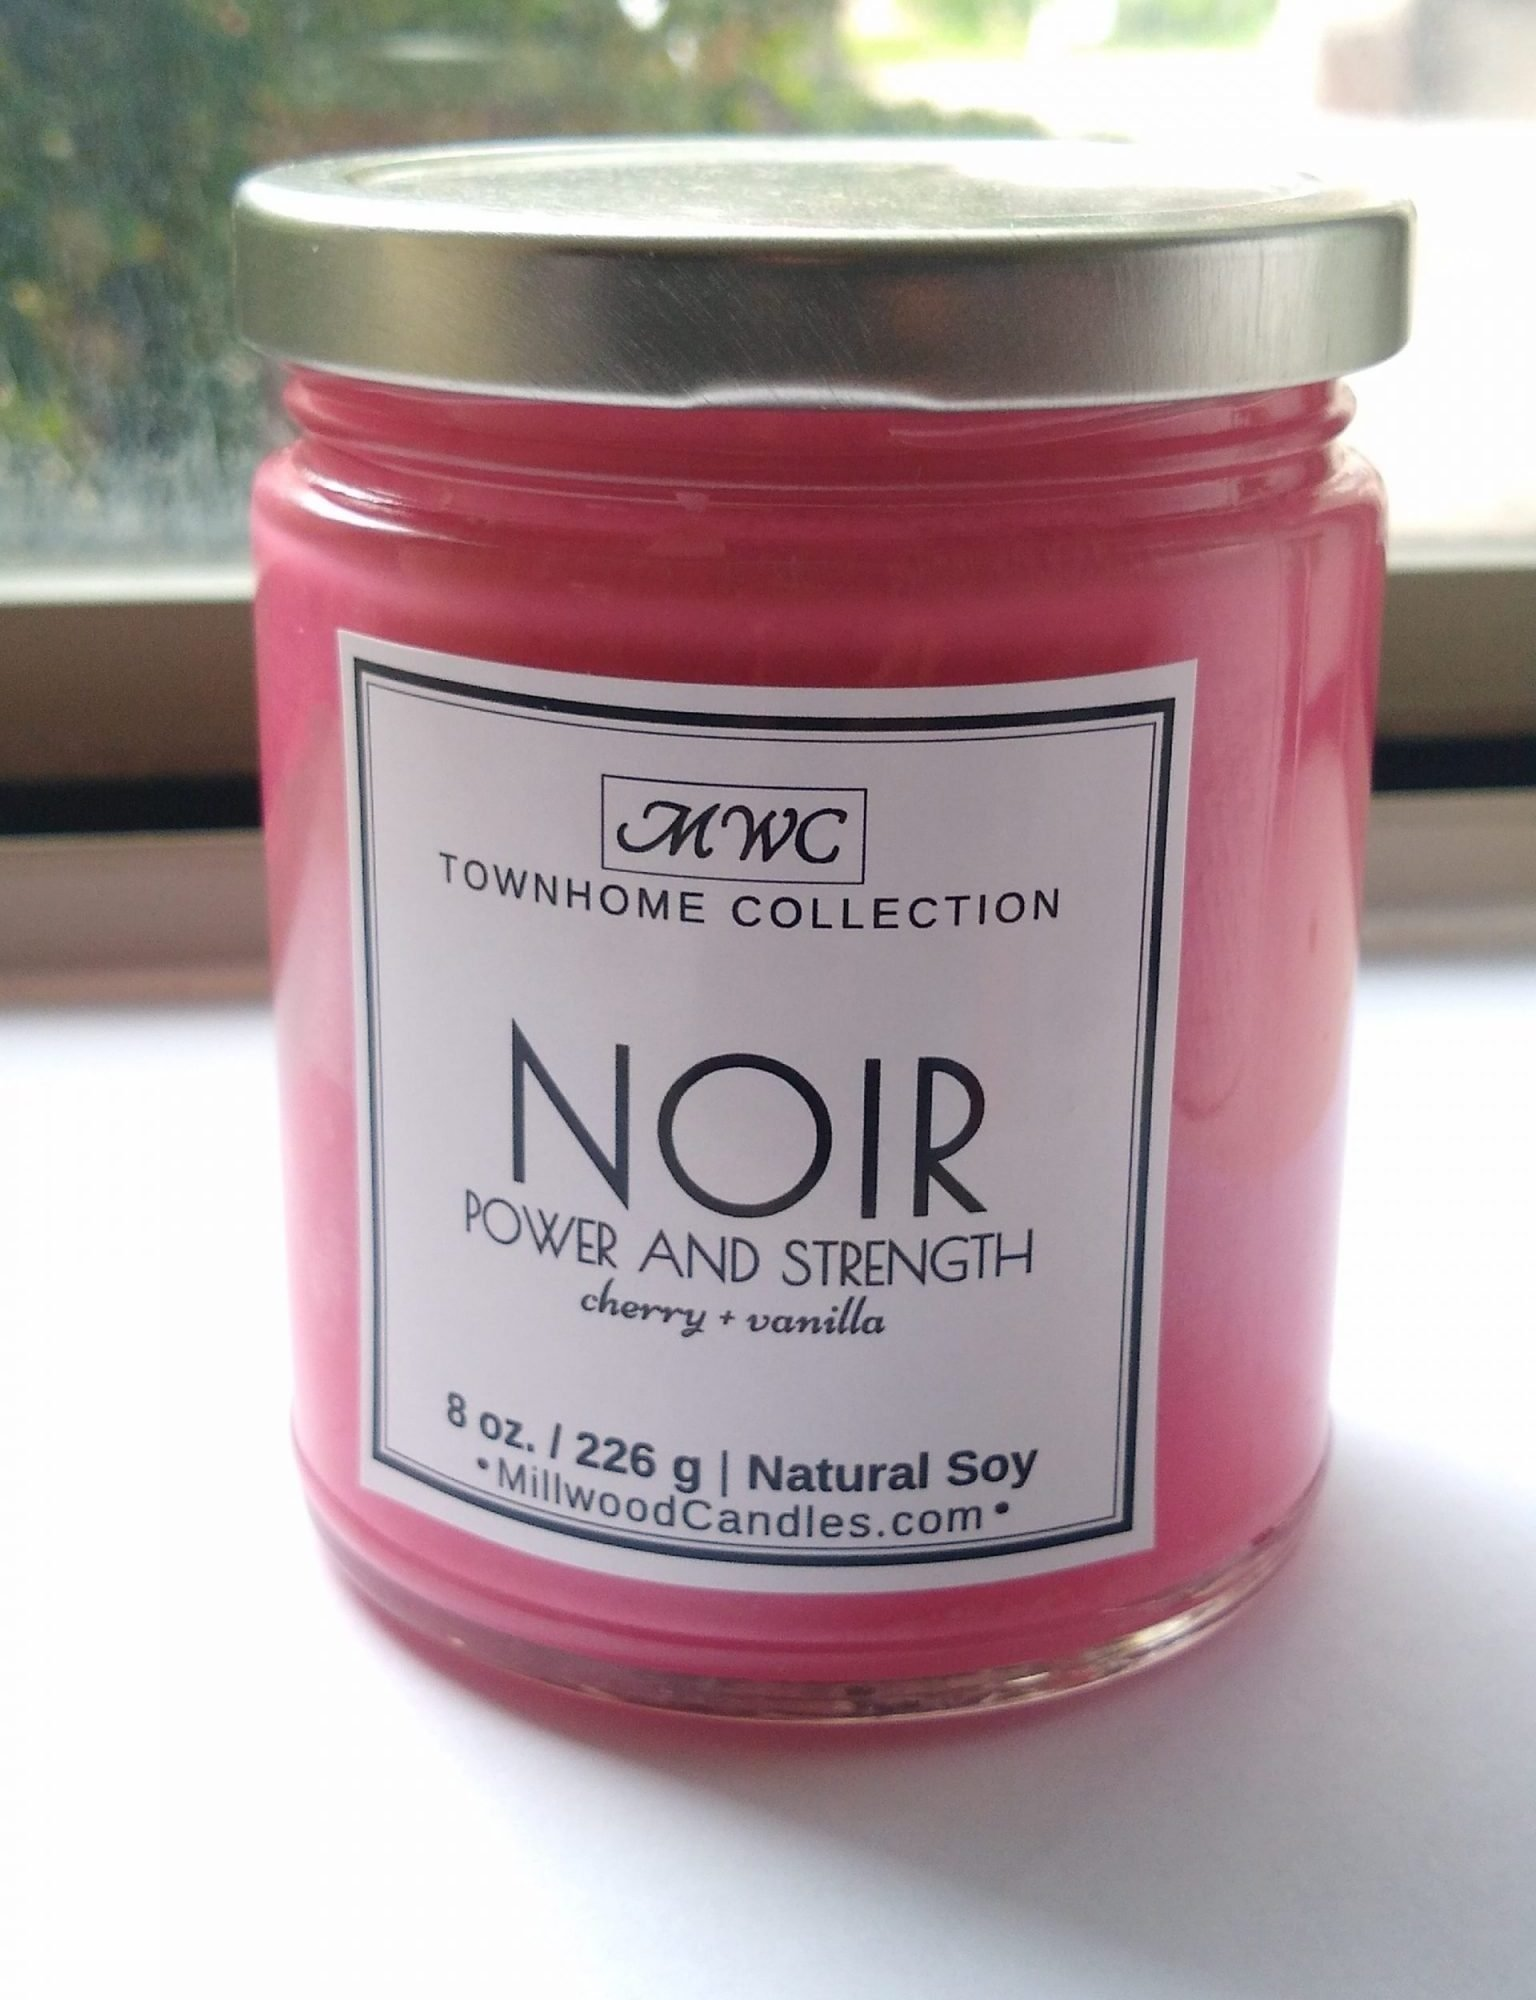 NOIR Black Cherry Natural Soy Candle from Millwood Candles